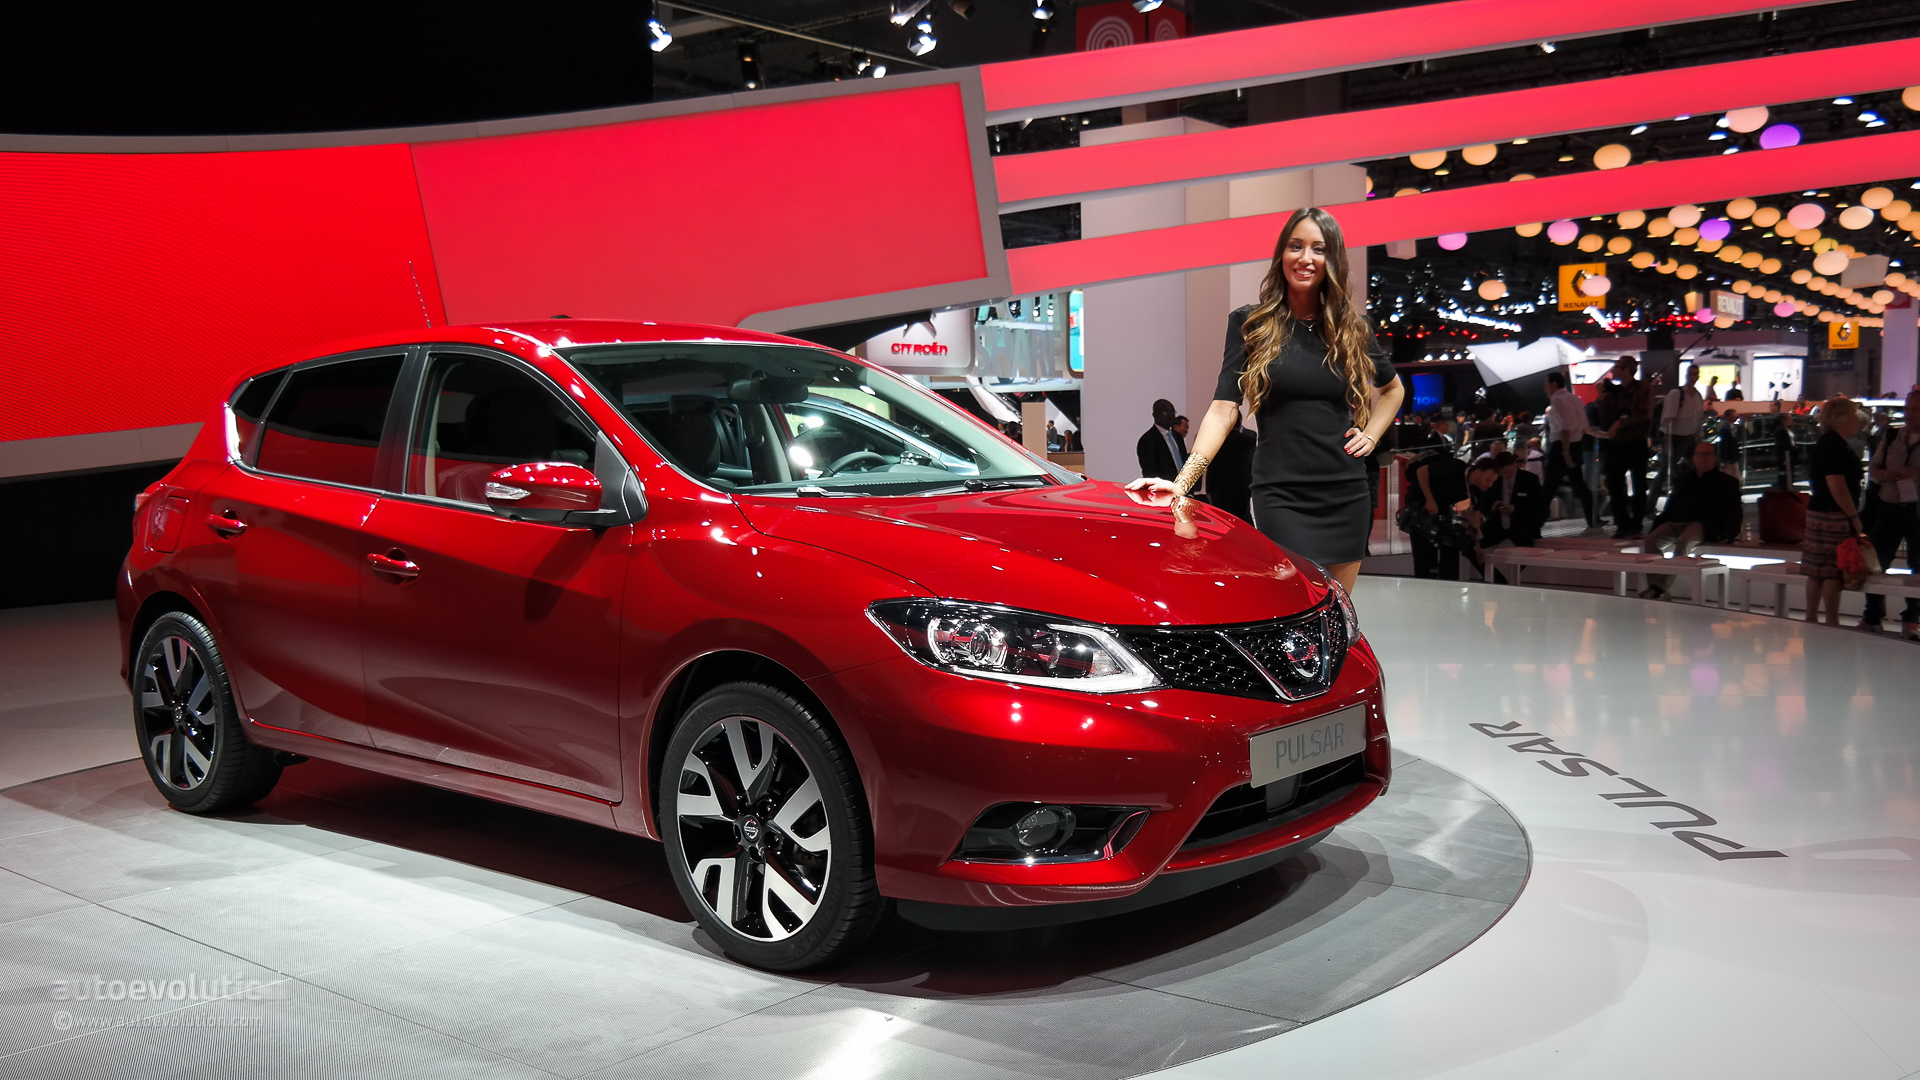 Nissan Pulsar Hatchback Discontinued From European Lineup ...